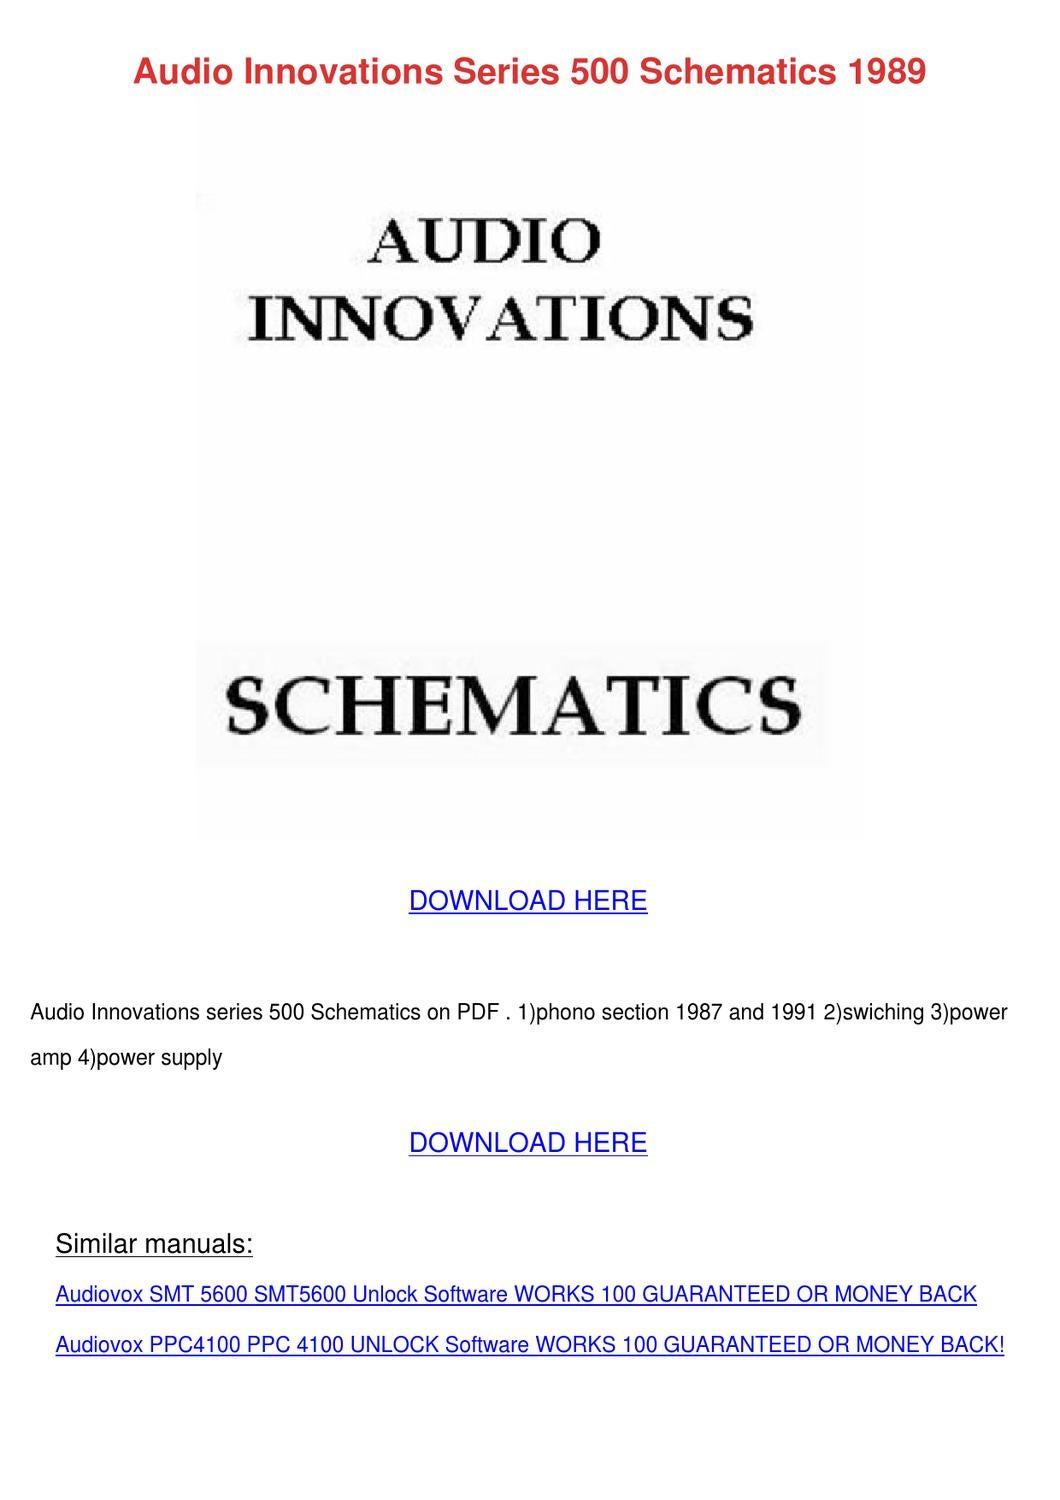 Audio Innovations Series 500 Schematics 1989 By Wei Velunza Issuu Amplifier Circuit Diagram Supreem Circuits And